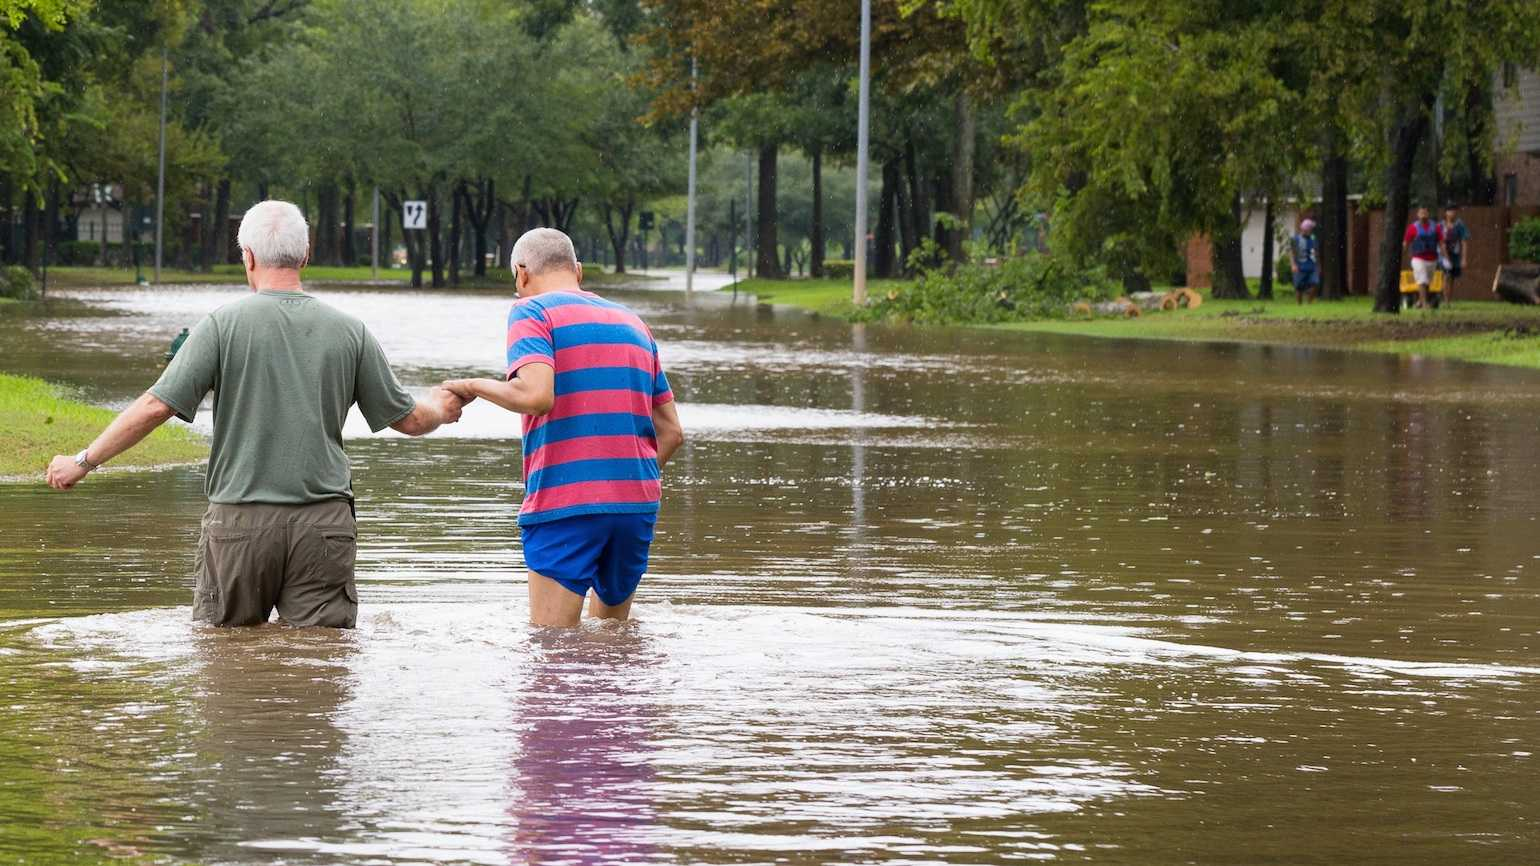 Helping someone after Hurricane Harvey